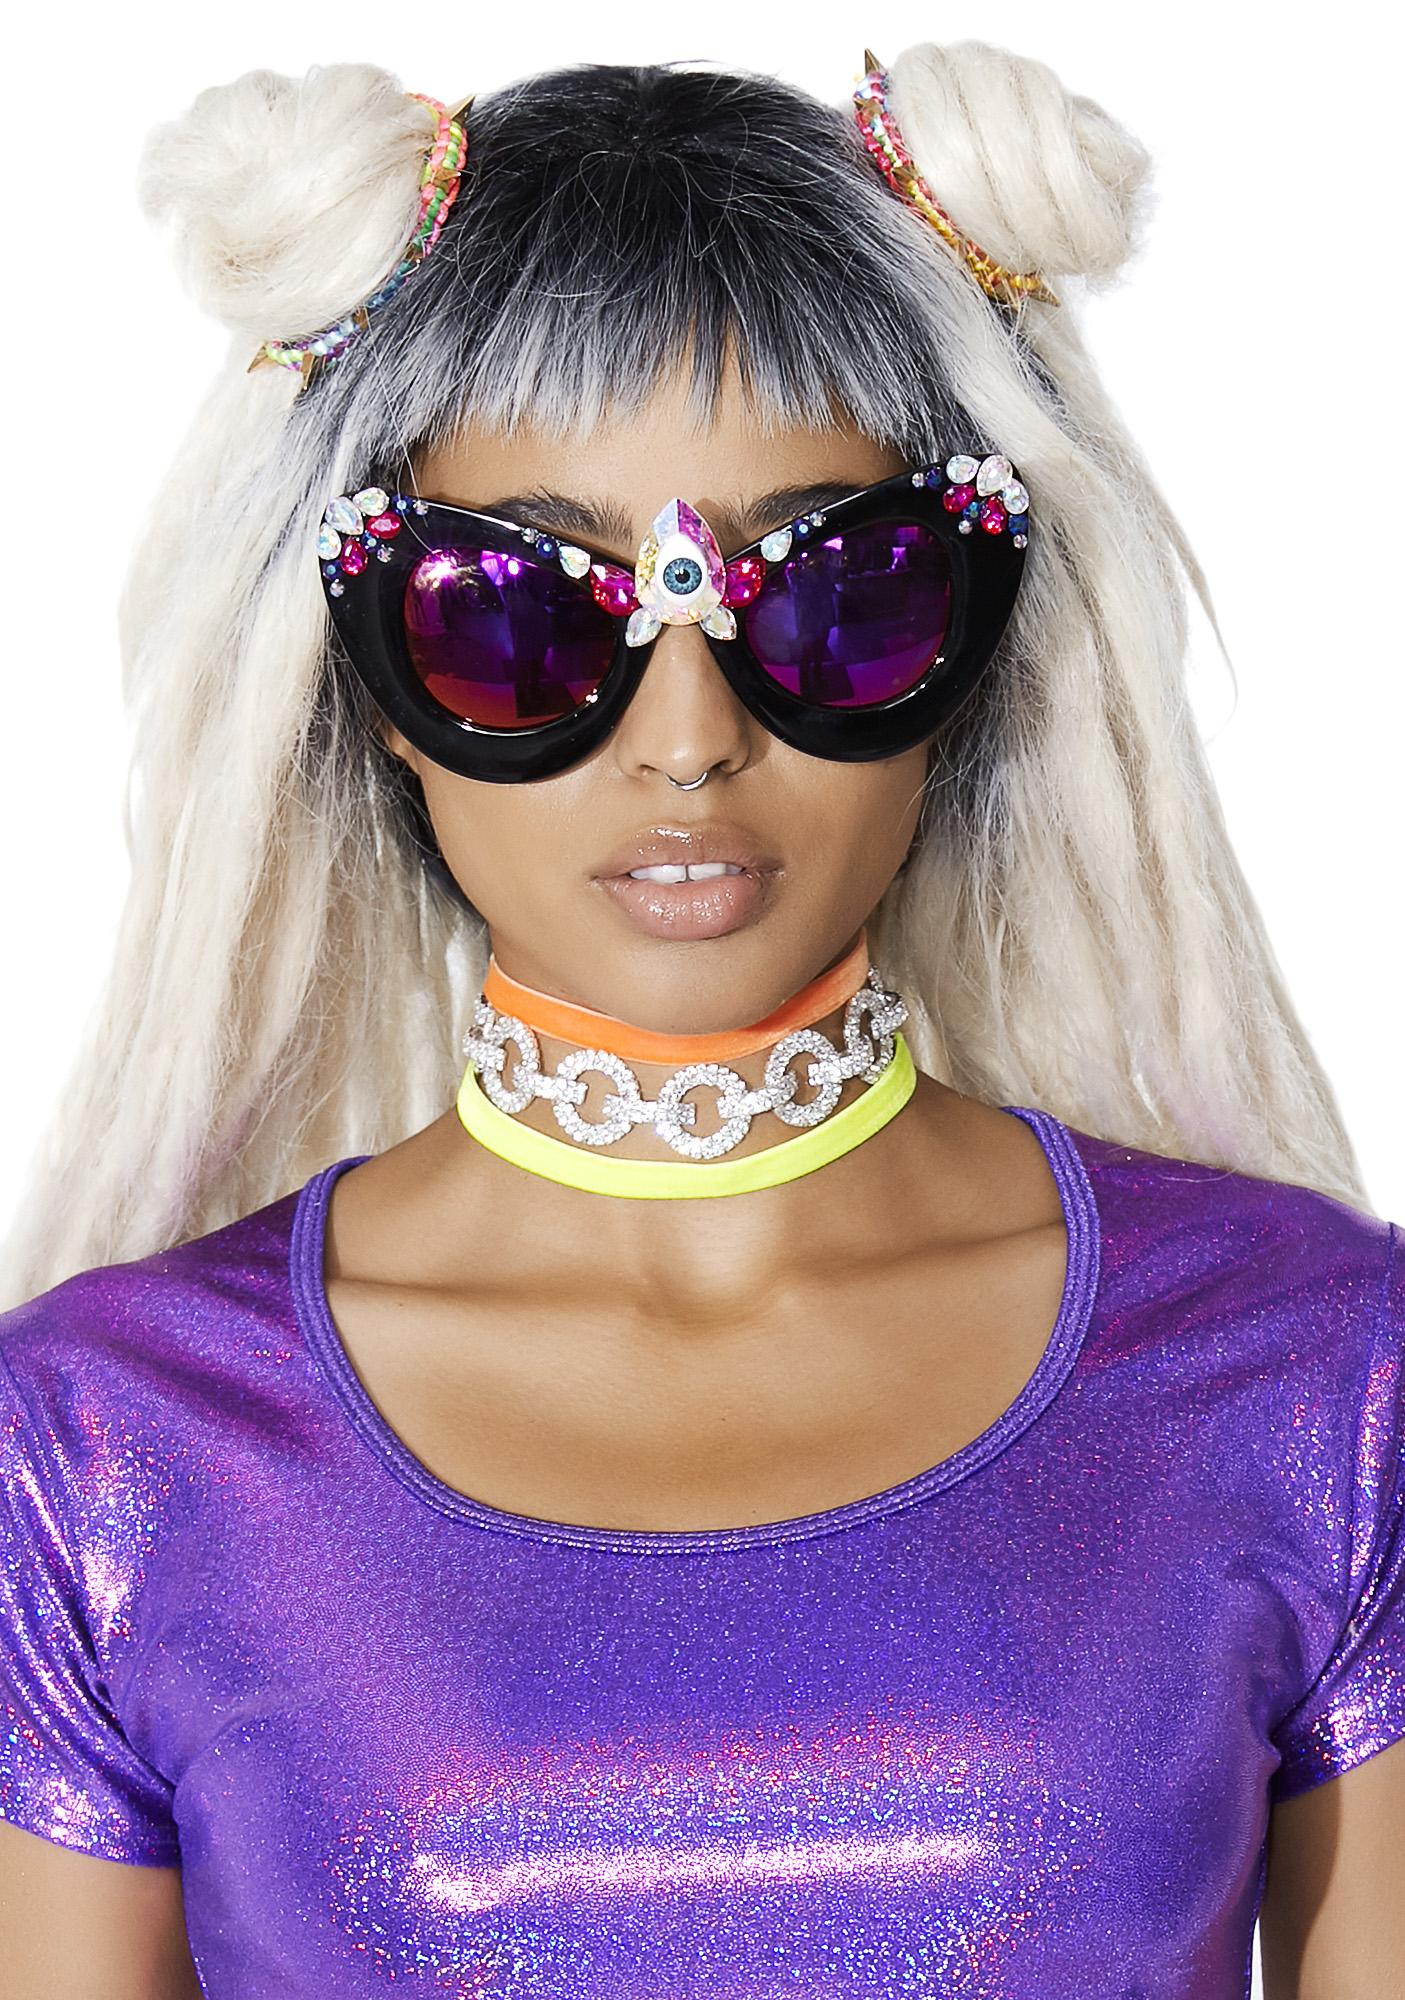 ReblKitty Third Eye Shades